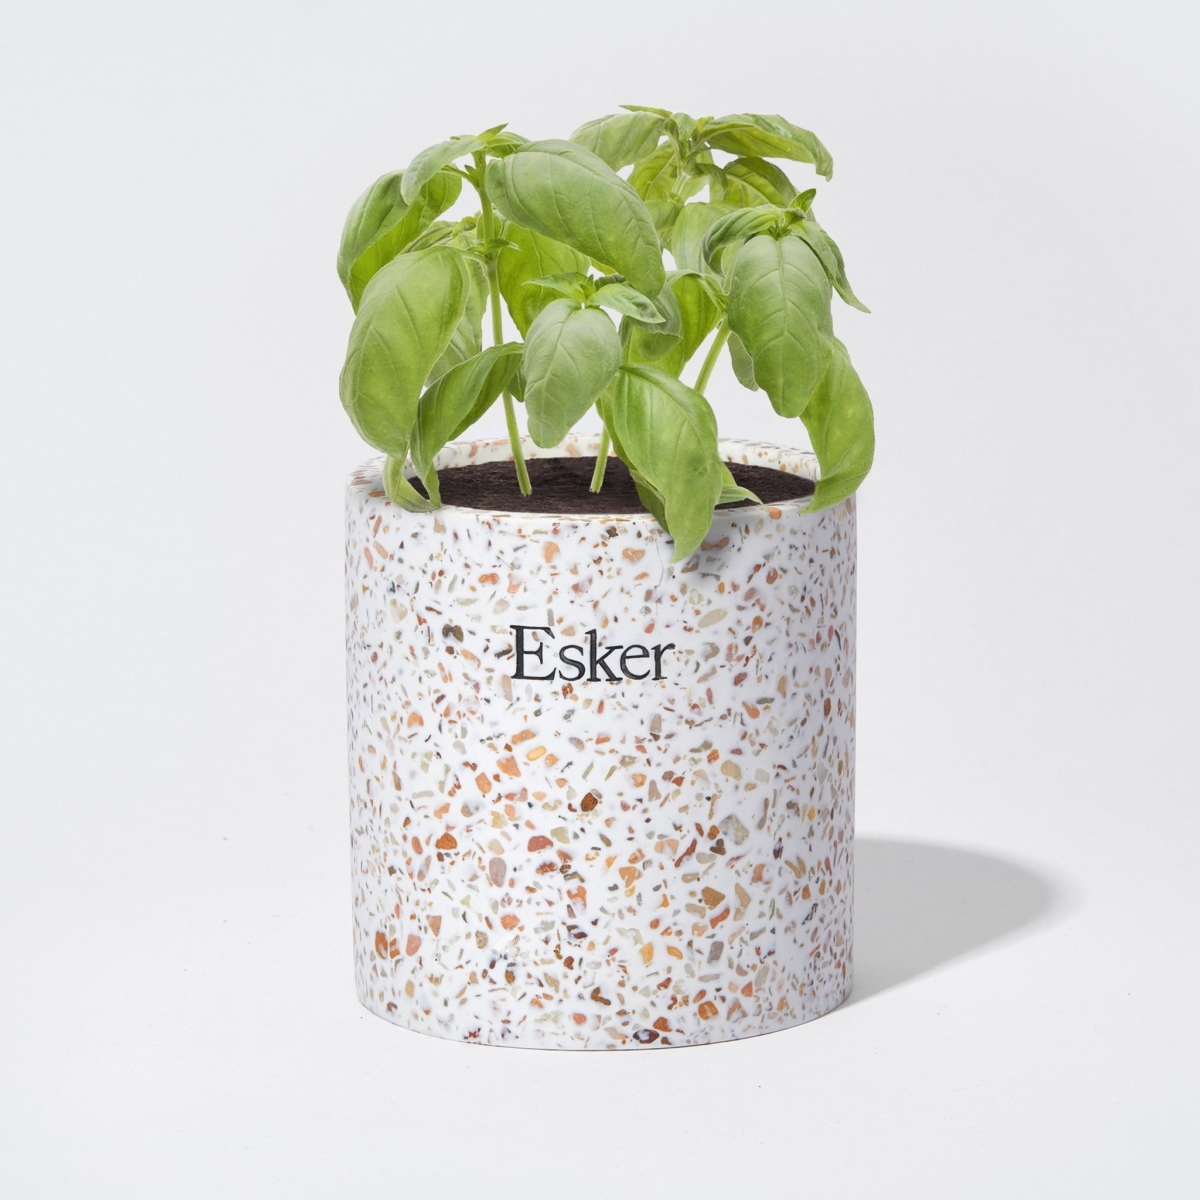 Basil in the plantable candle